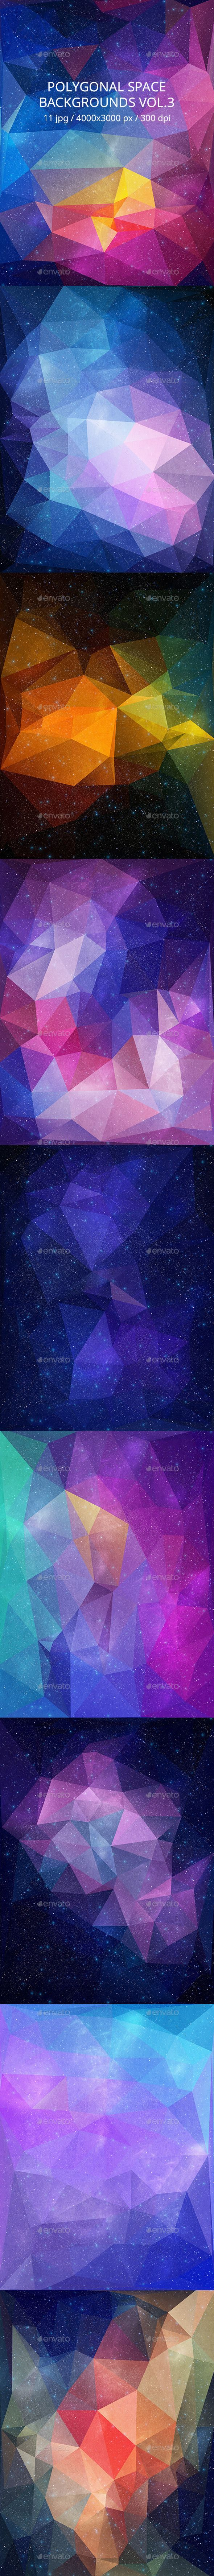 Polygonal Space Backgrounds Vol.3